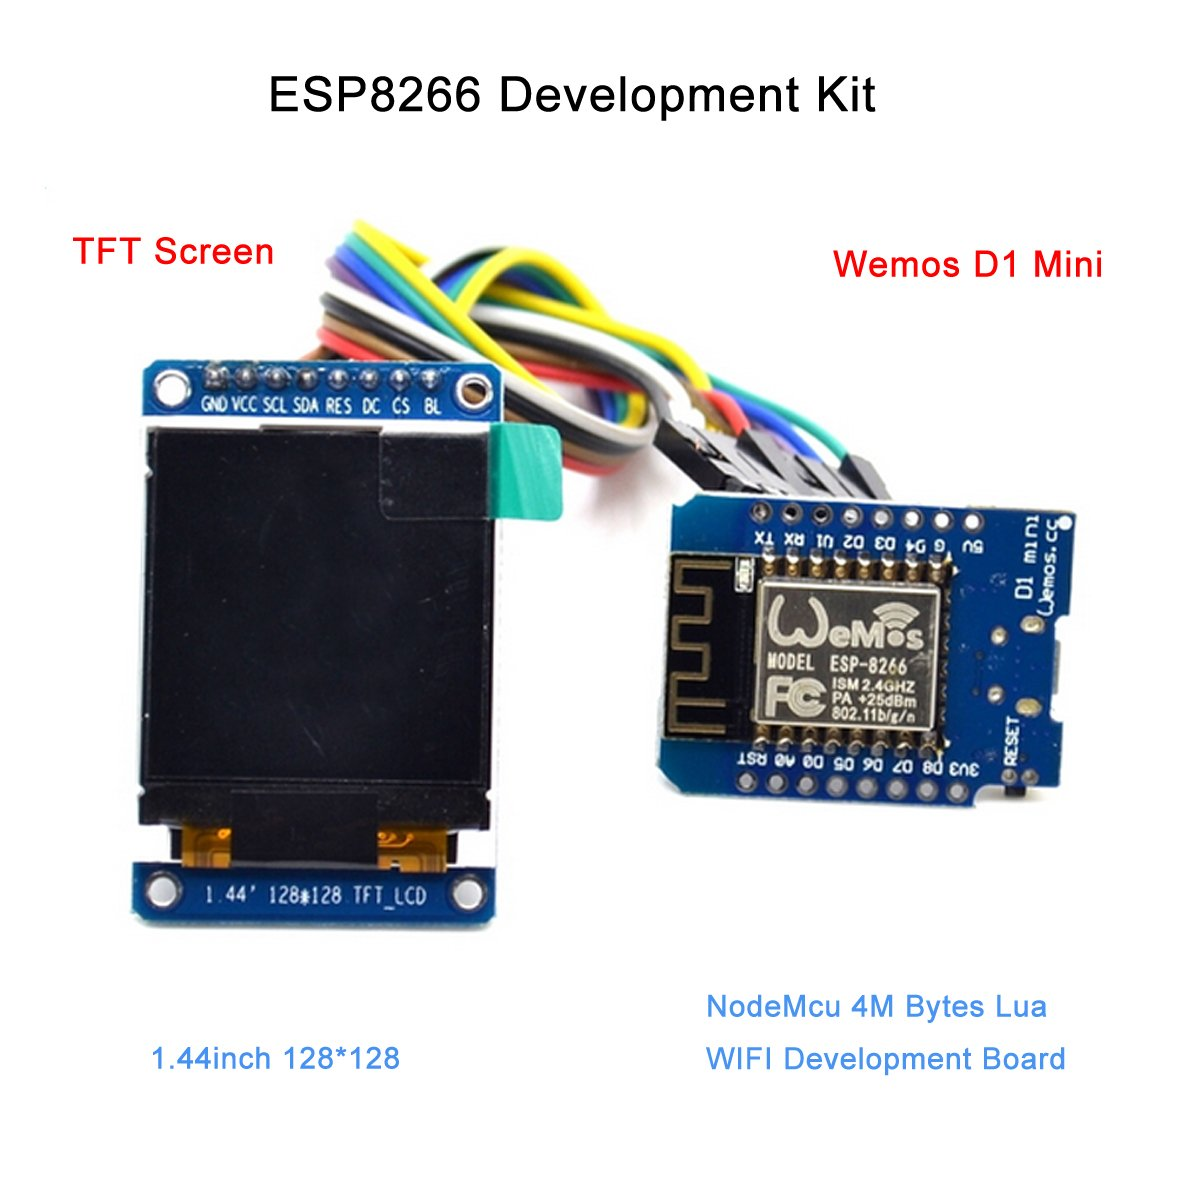 Esp8266 Development Kit With D1 Mini Nodemcu 4m Bytes Wemos Esp 12f Board Lua Wifi And Tft Screen 144inch 128x128 For Internet Of Things By